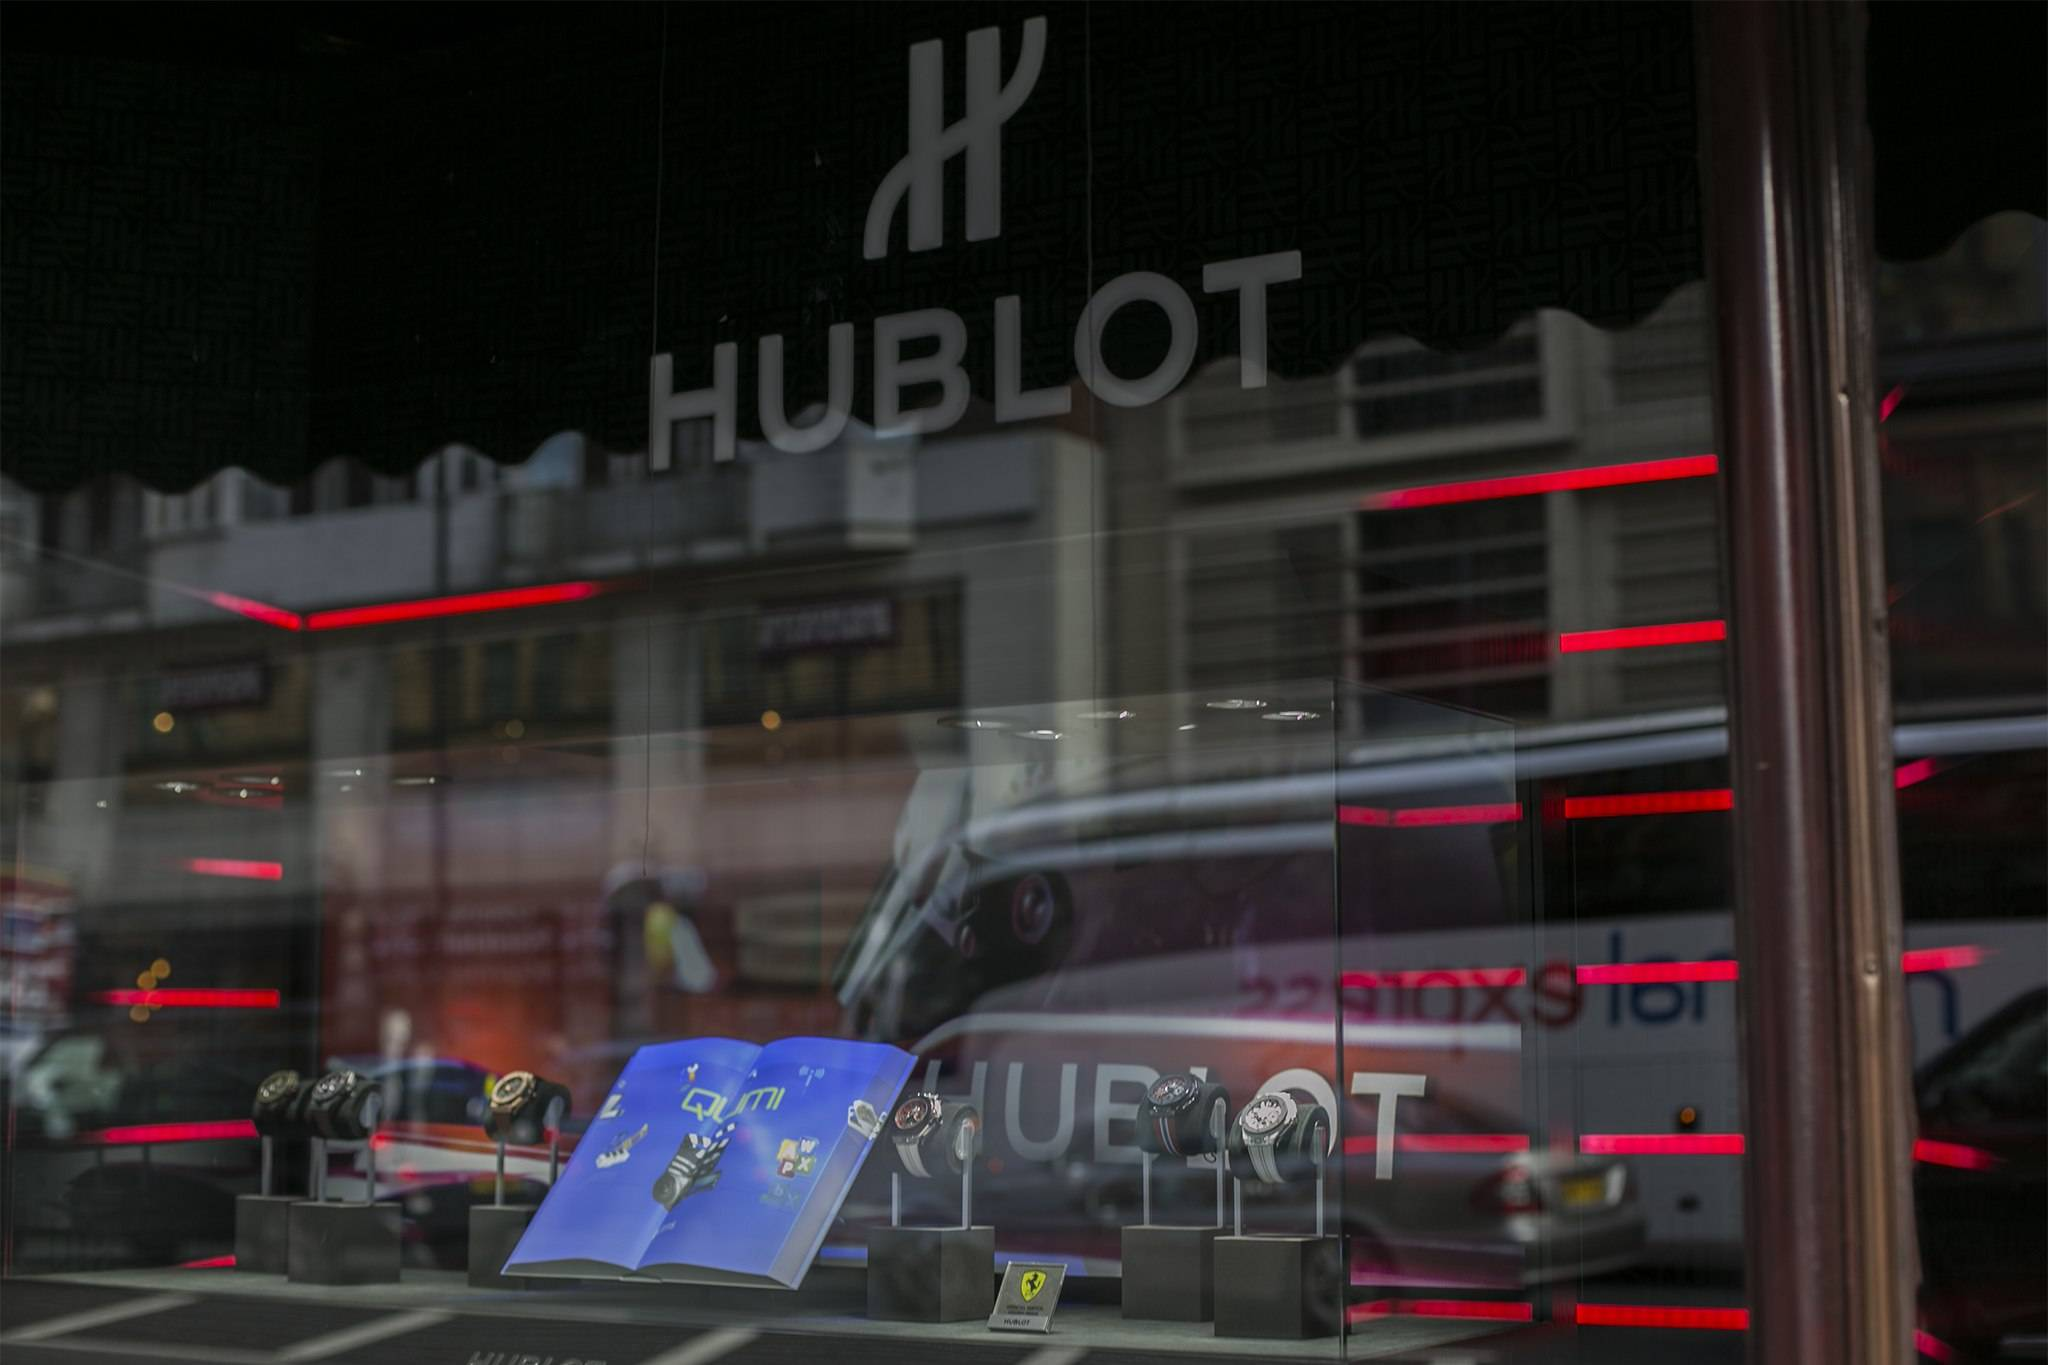 Hublot Fluorescent Fusion Exhibition Windows at Harrods 2015